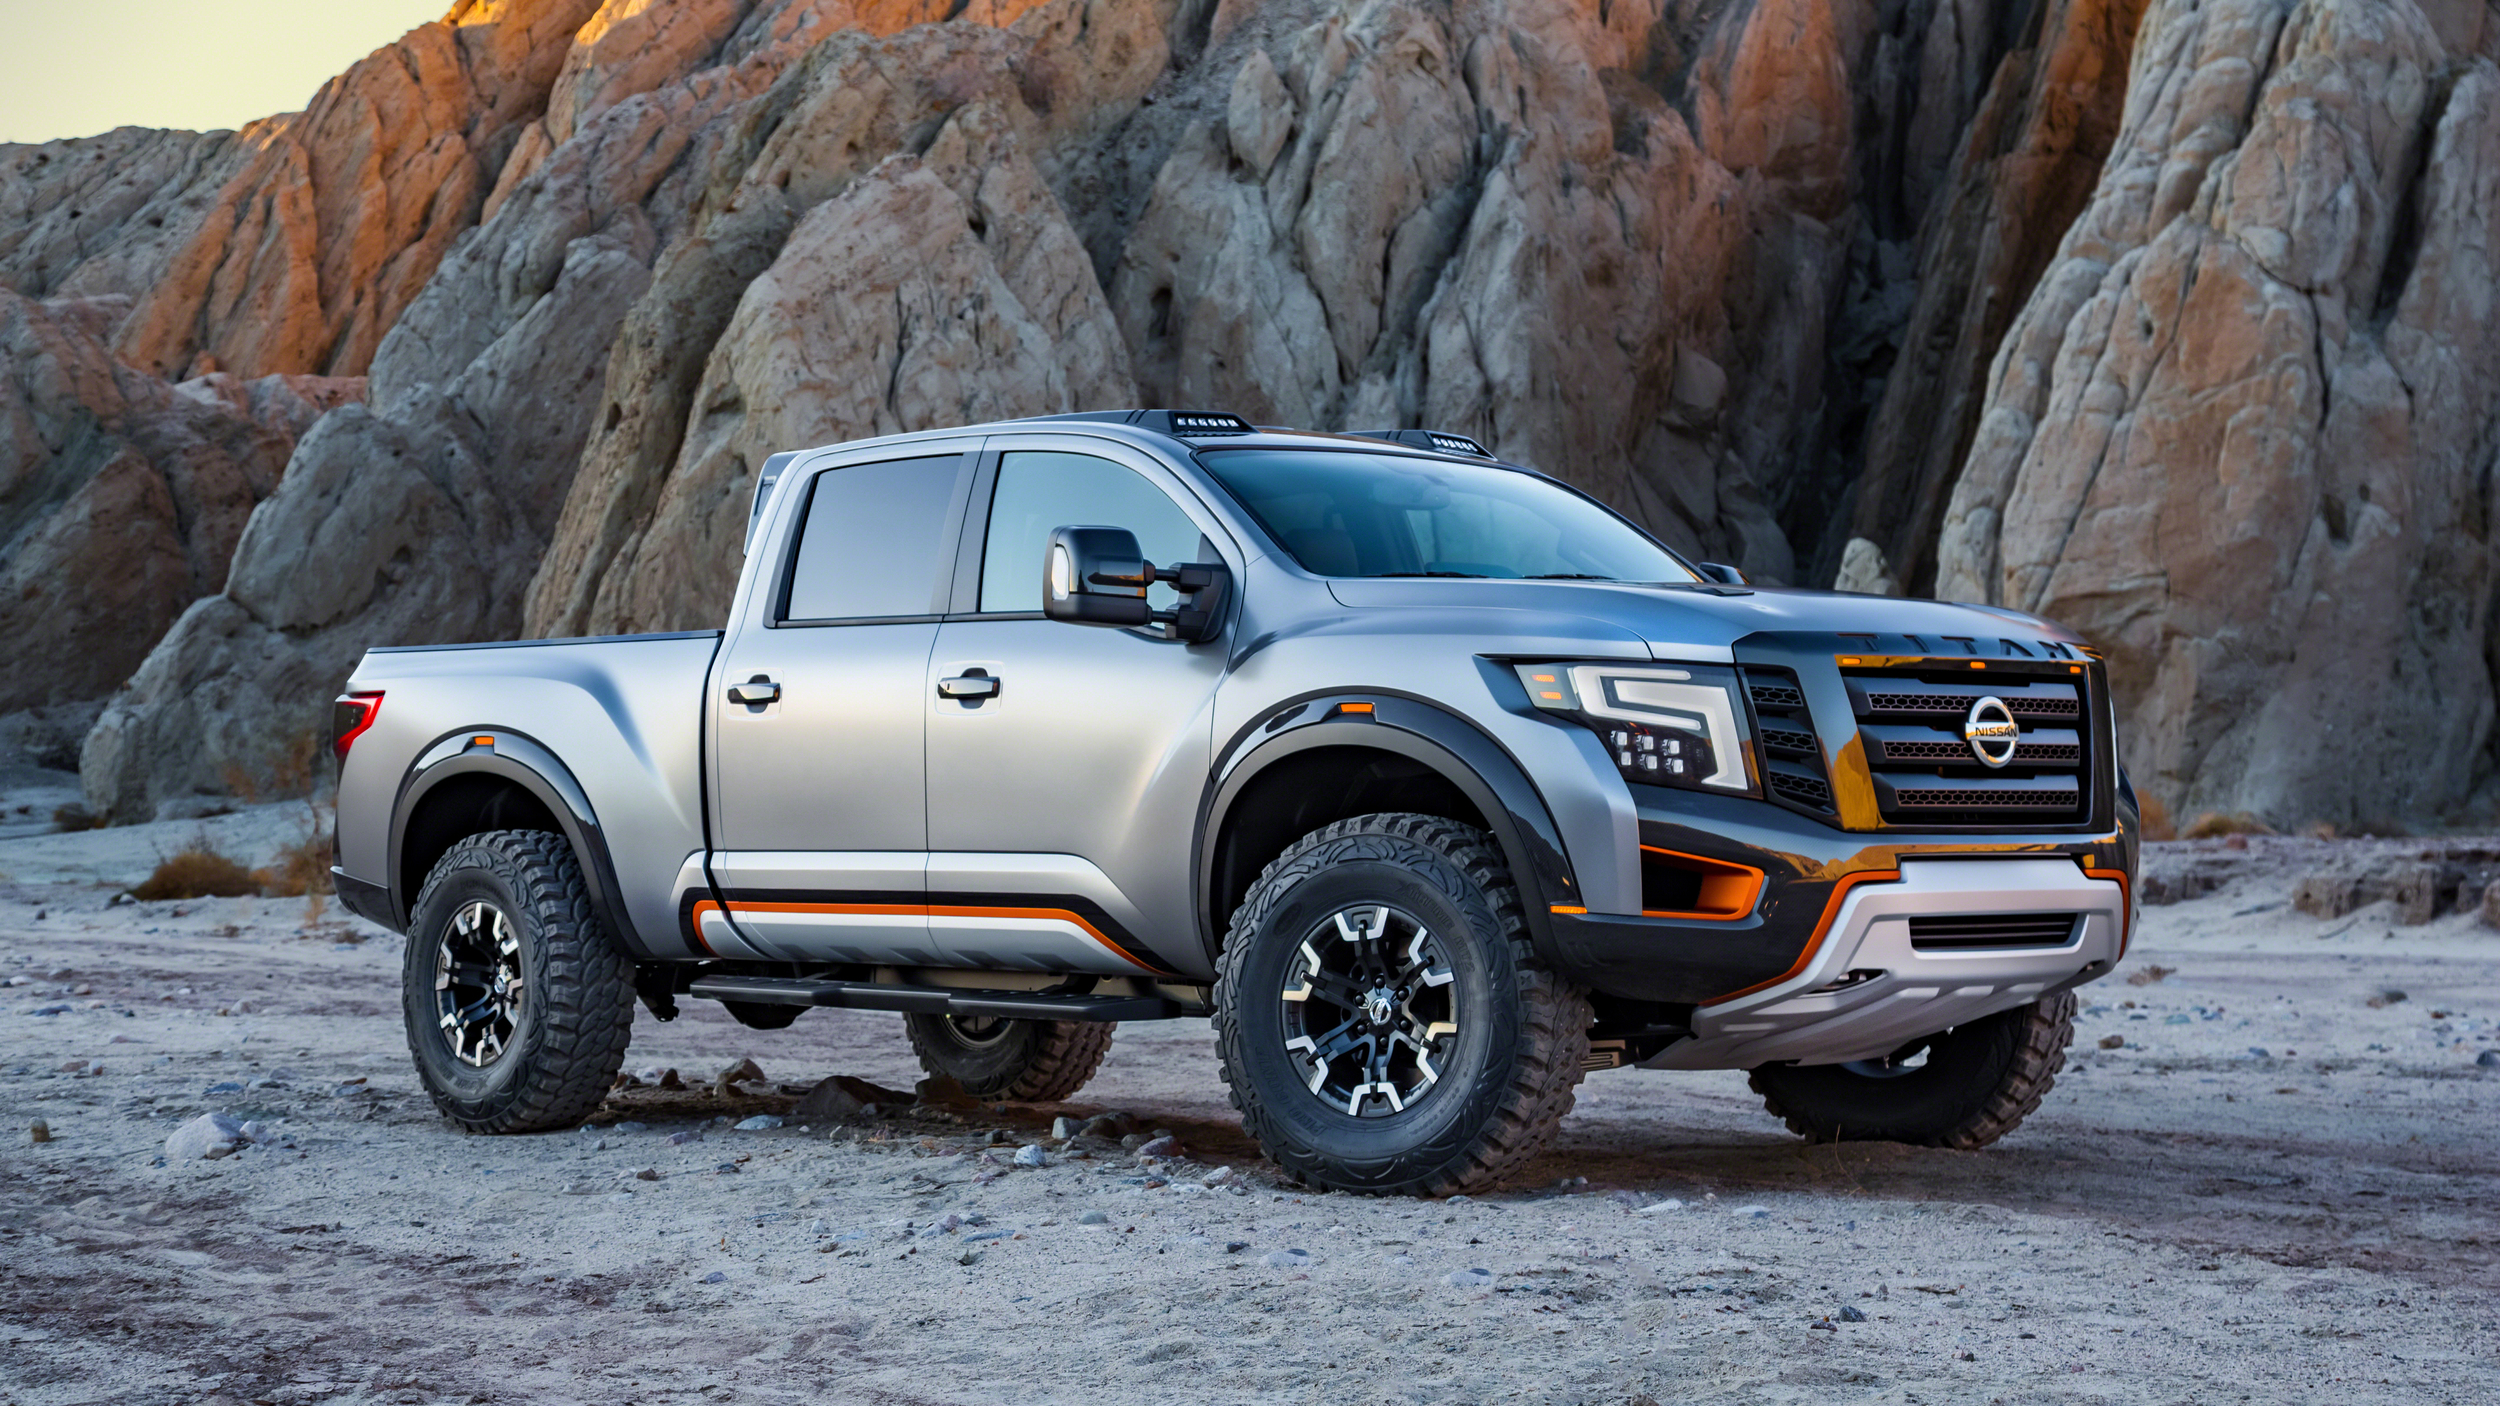 Nissan Titan Warrior Concept Photo Gallery - Autoblog